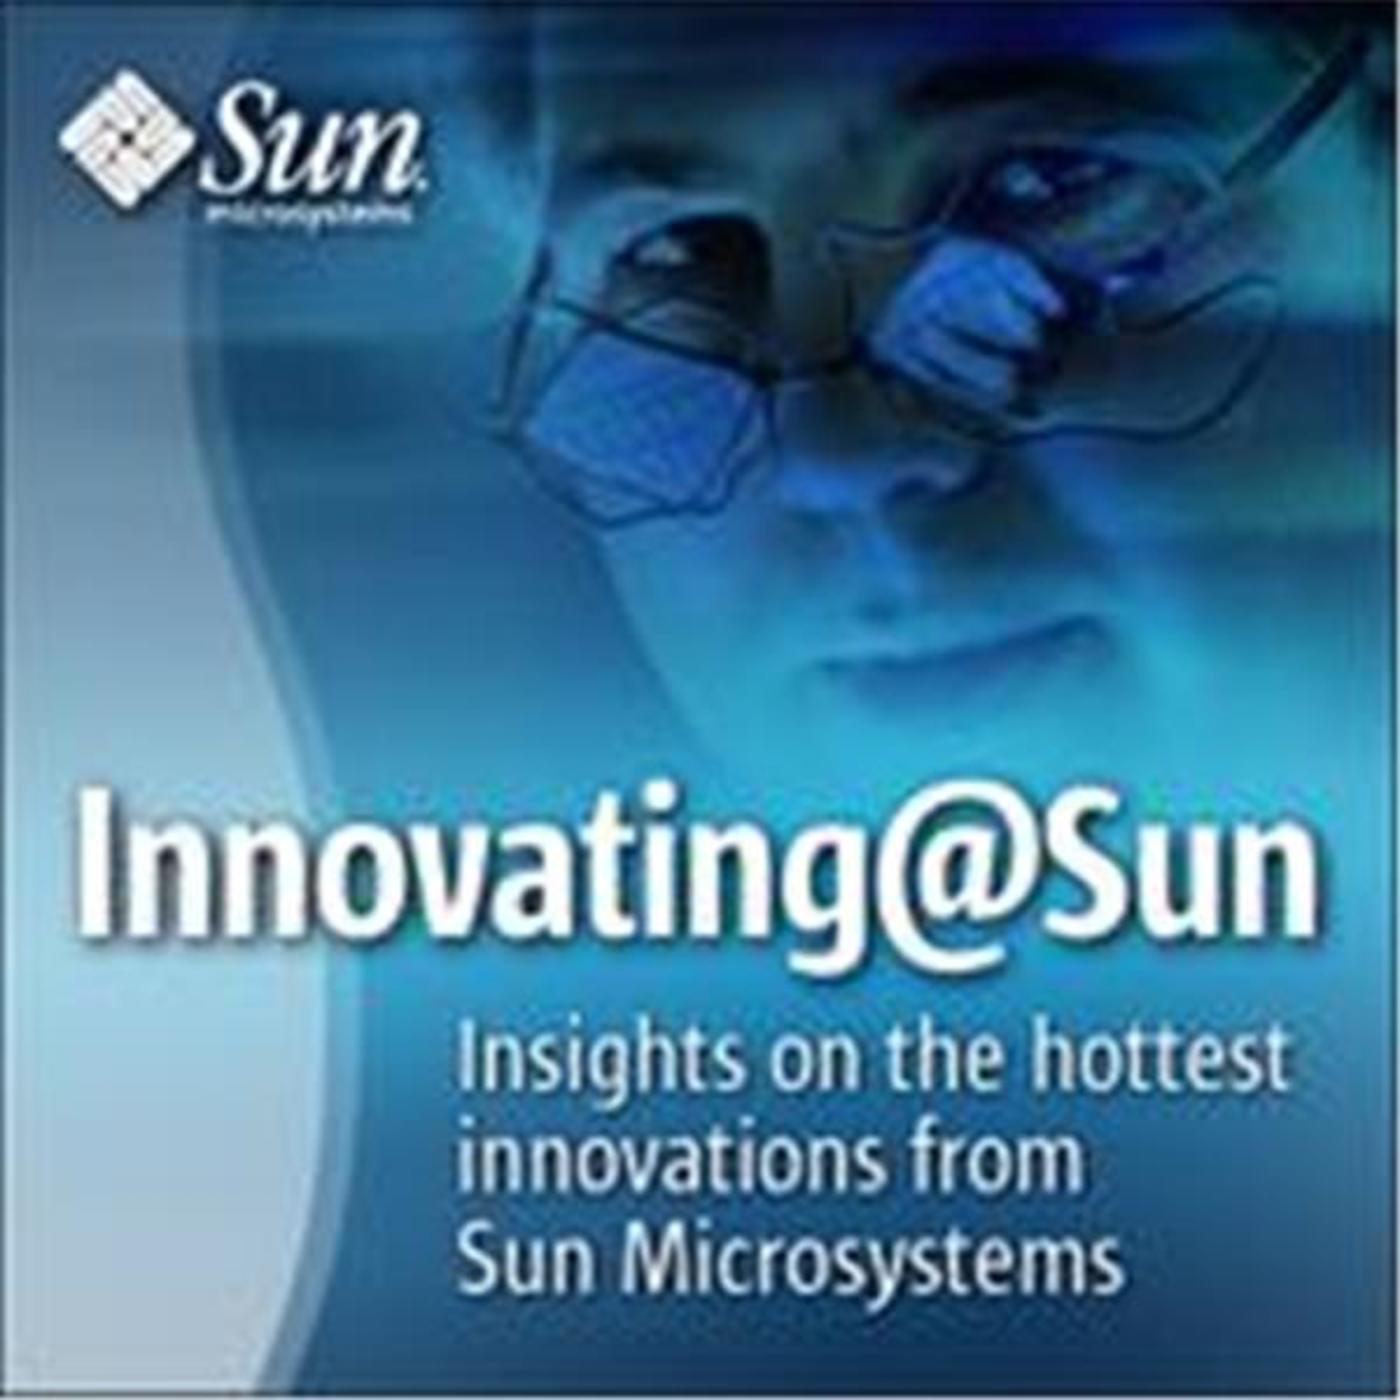 business analysis of sun microsystem Five years later, how is the oracle-sun marriage working out larry ellison promised to grow sun products let's look at how well he kept those promises.